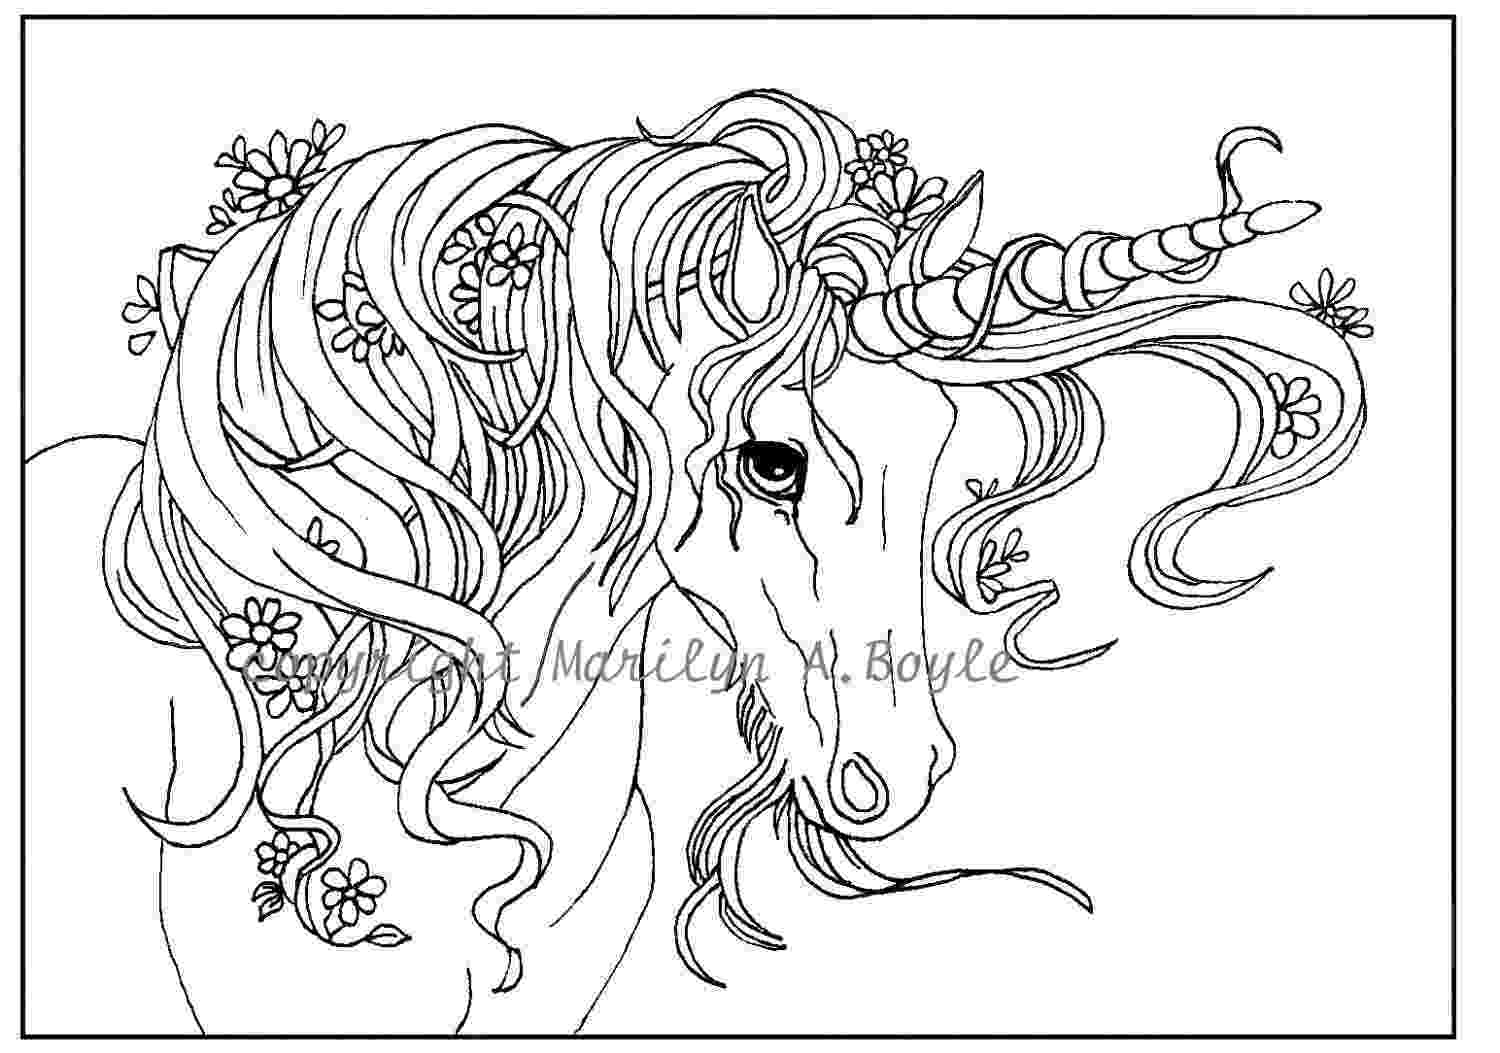 coloring pages for unicorns unicorns coloring pages minister coloring unicorns pages for coloring